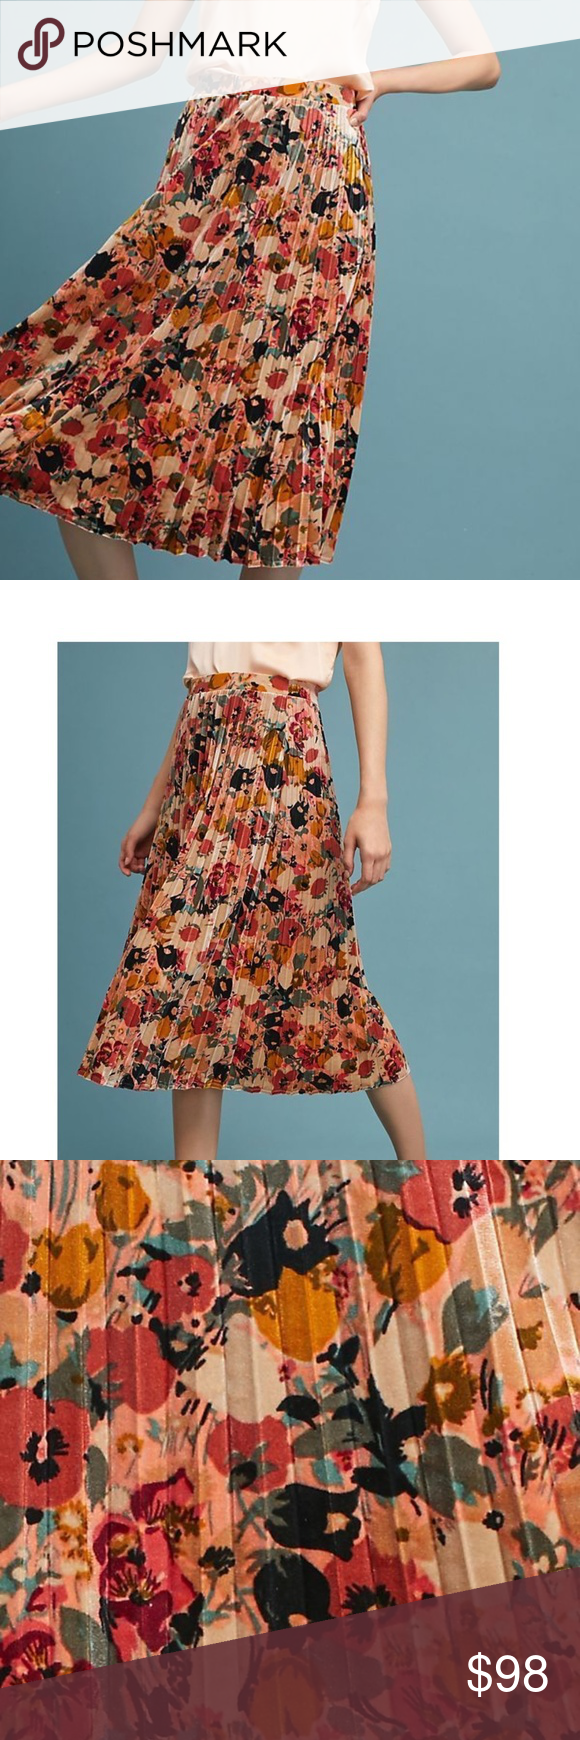 6e1ba6e474 TOP RATED Anthropologie Floral Velvet Skirt new Brand name: MAEVE  Polyester, spandex · Pleated detail · Pull-on styling · Hand wash ·  Imported Dimensions ...